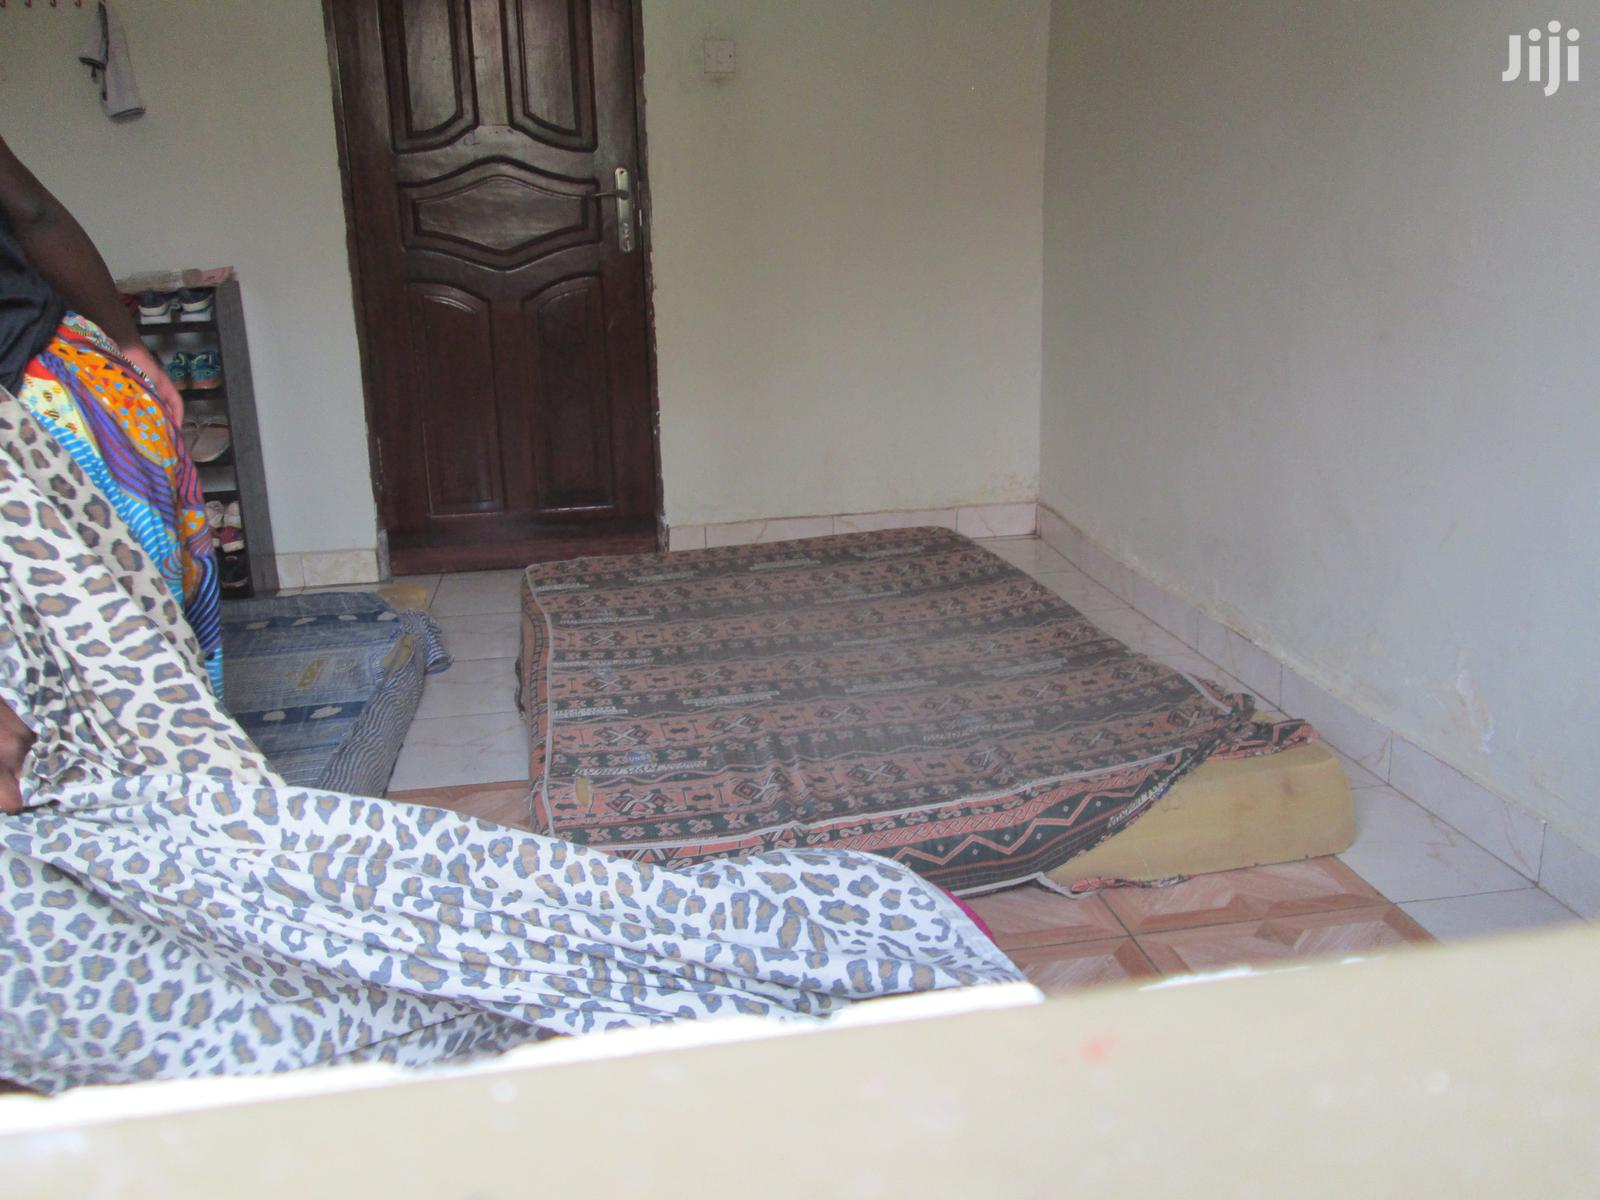 Three Bedroom House In Kirinya For Sale | Houses & Apartments For Sale for sale in Kampala, Central Region, Uganda